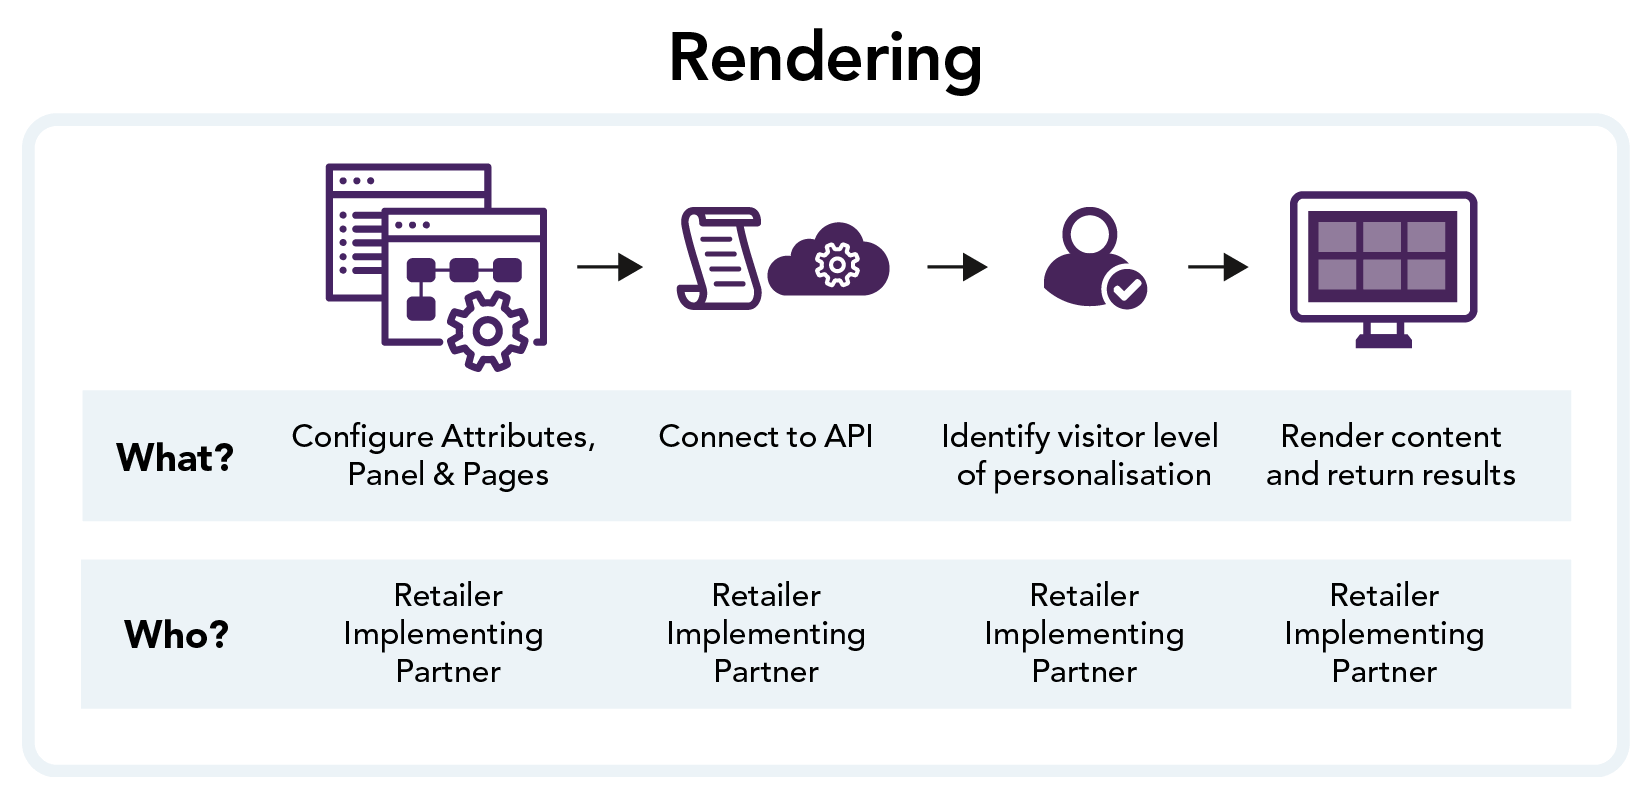 Graphic showing the steps required to achieve correct rendering